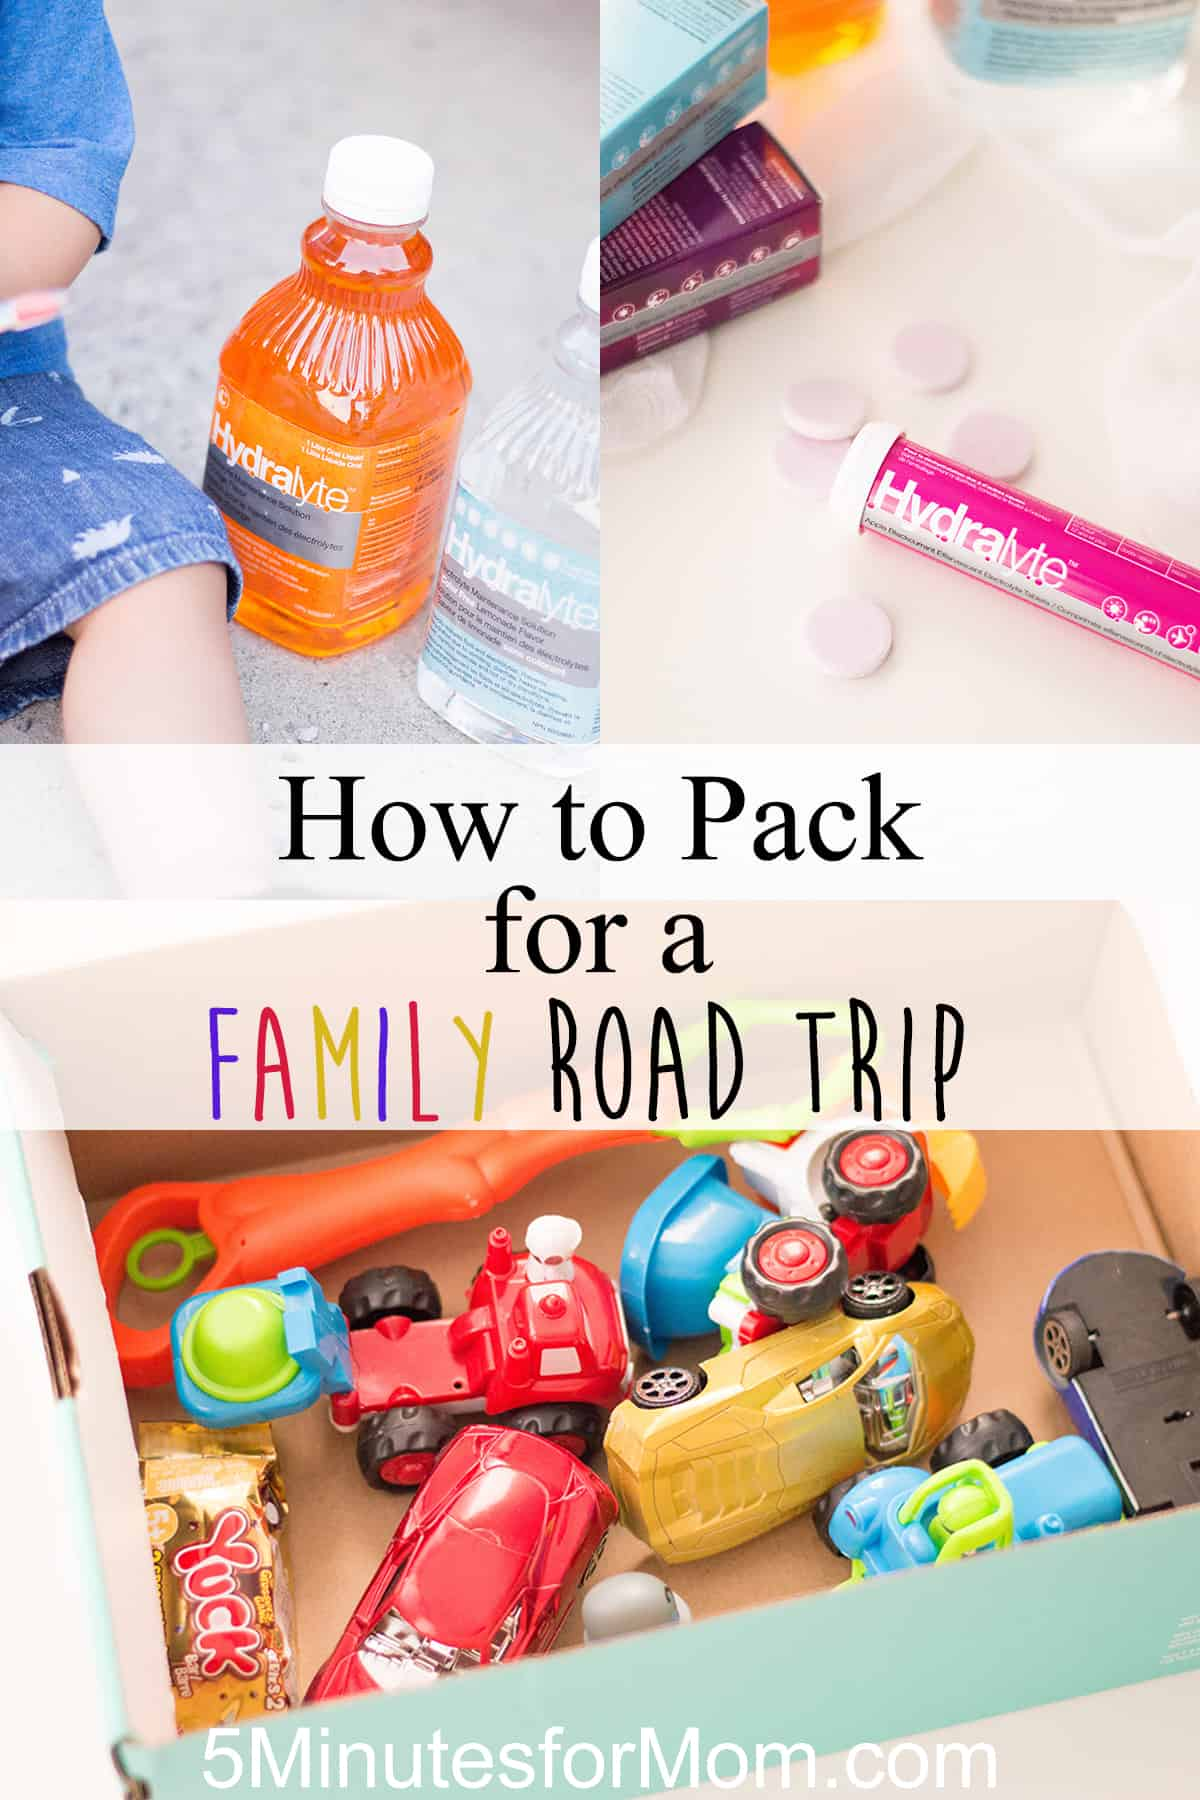 How to Pack for a Family Road Trip - Stay healthy, stay safe, and have fun! #ad #familytravel #roadtrip